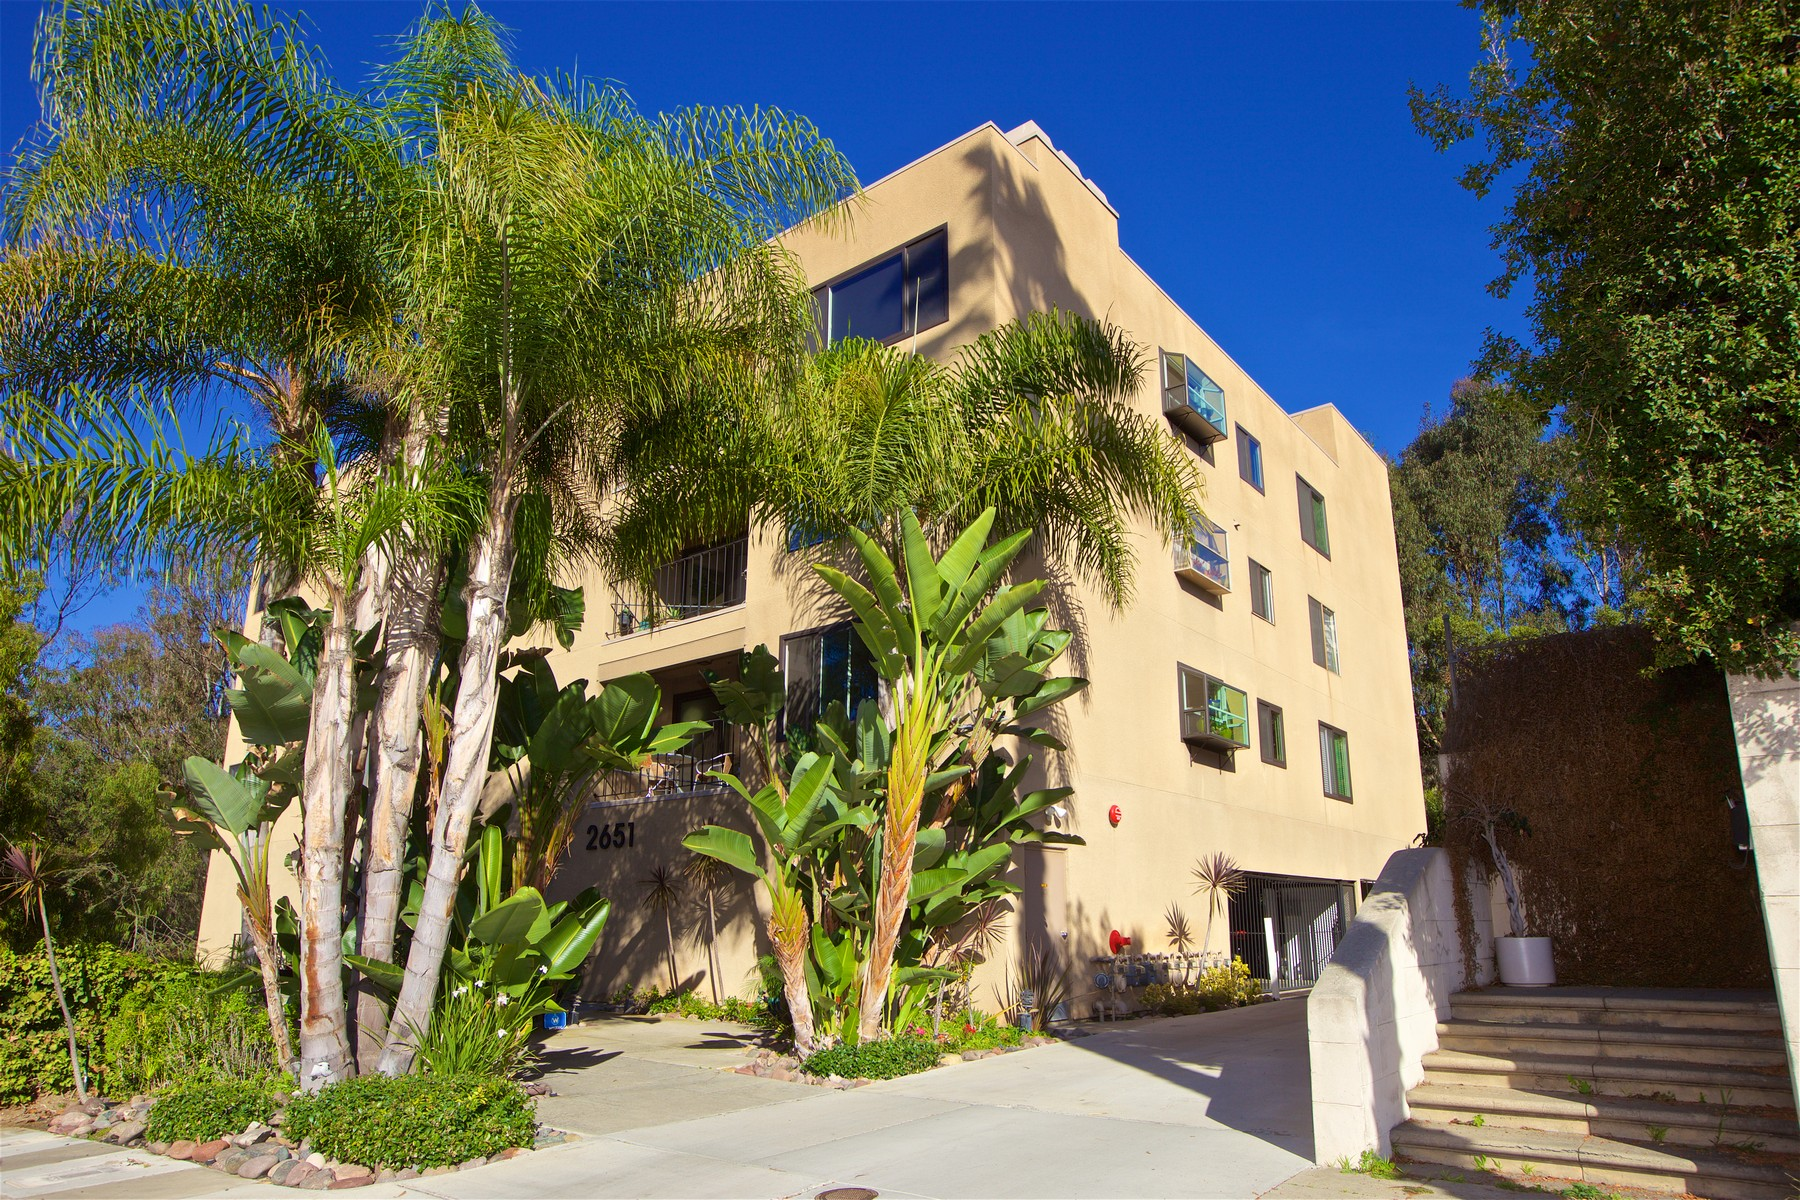 Condominium for Sale at Maplefront 2651 Front Street 101 San Diego, California 92103 United States